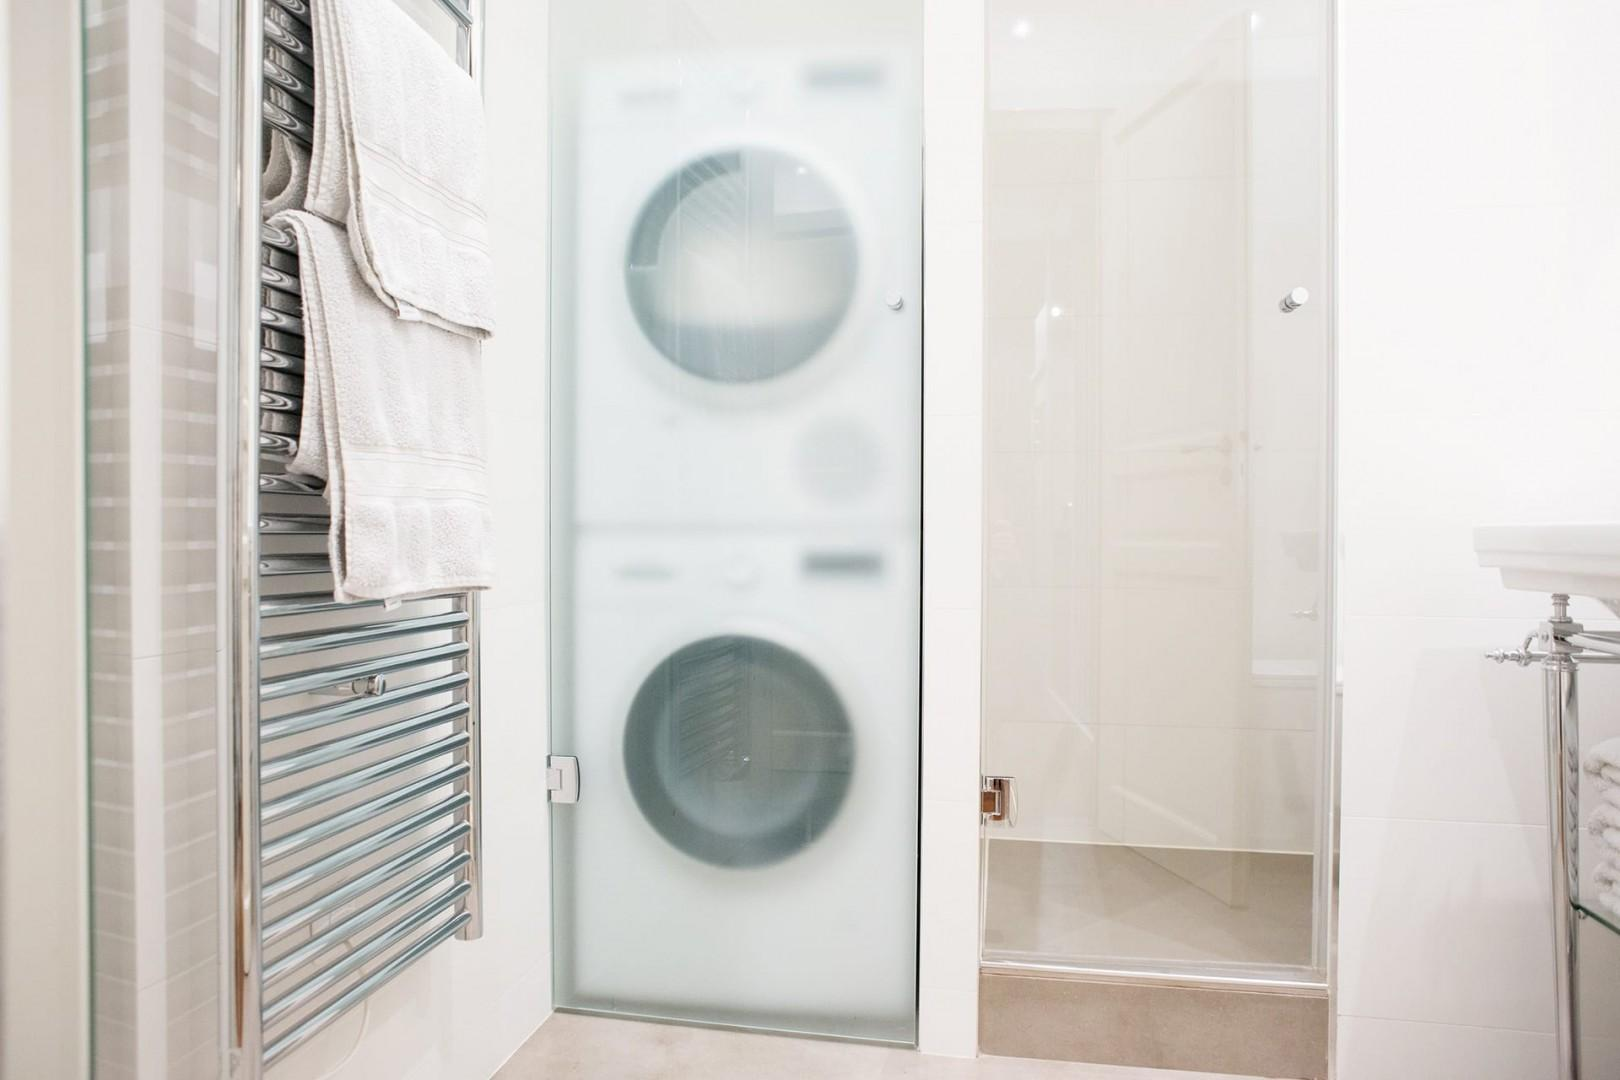 Grab a fluffy towel from the heated towel rack!